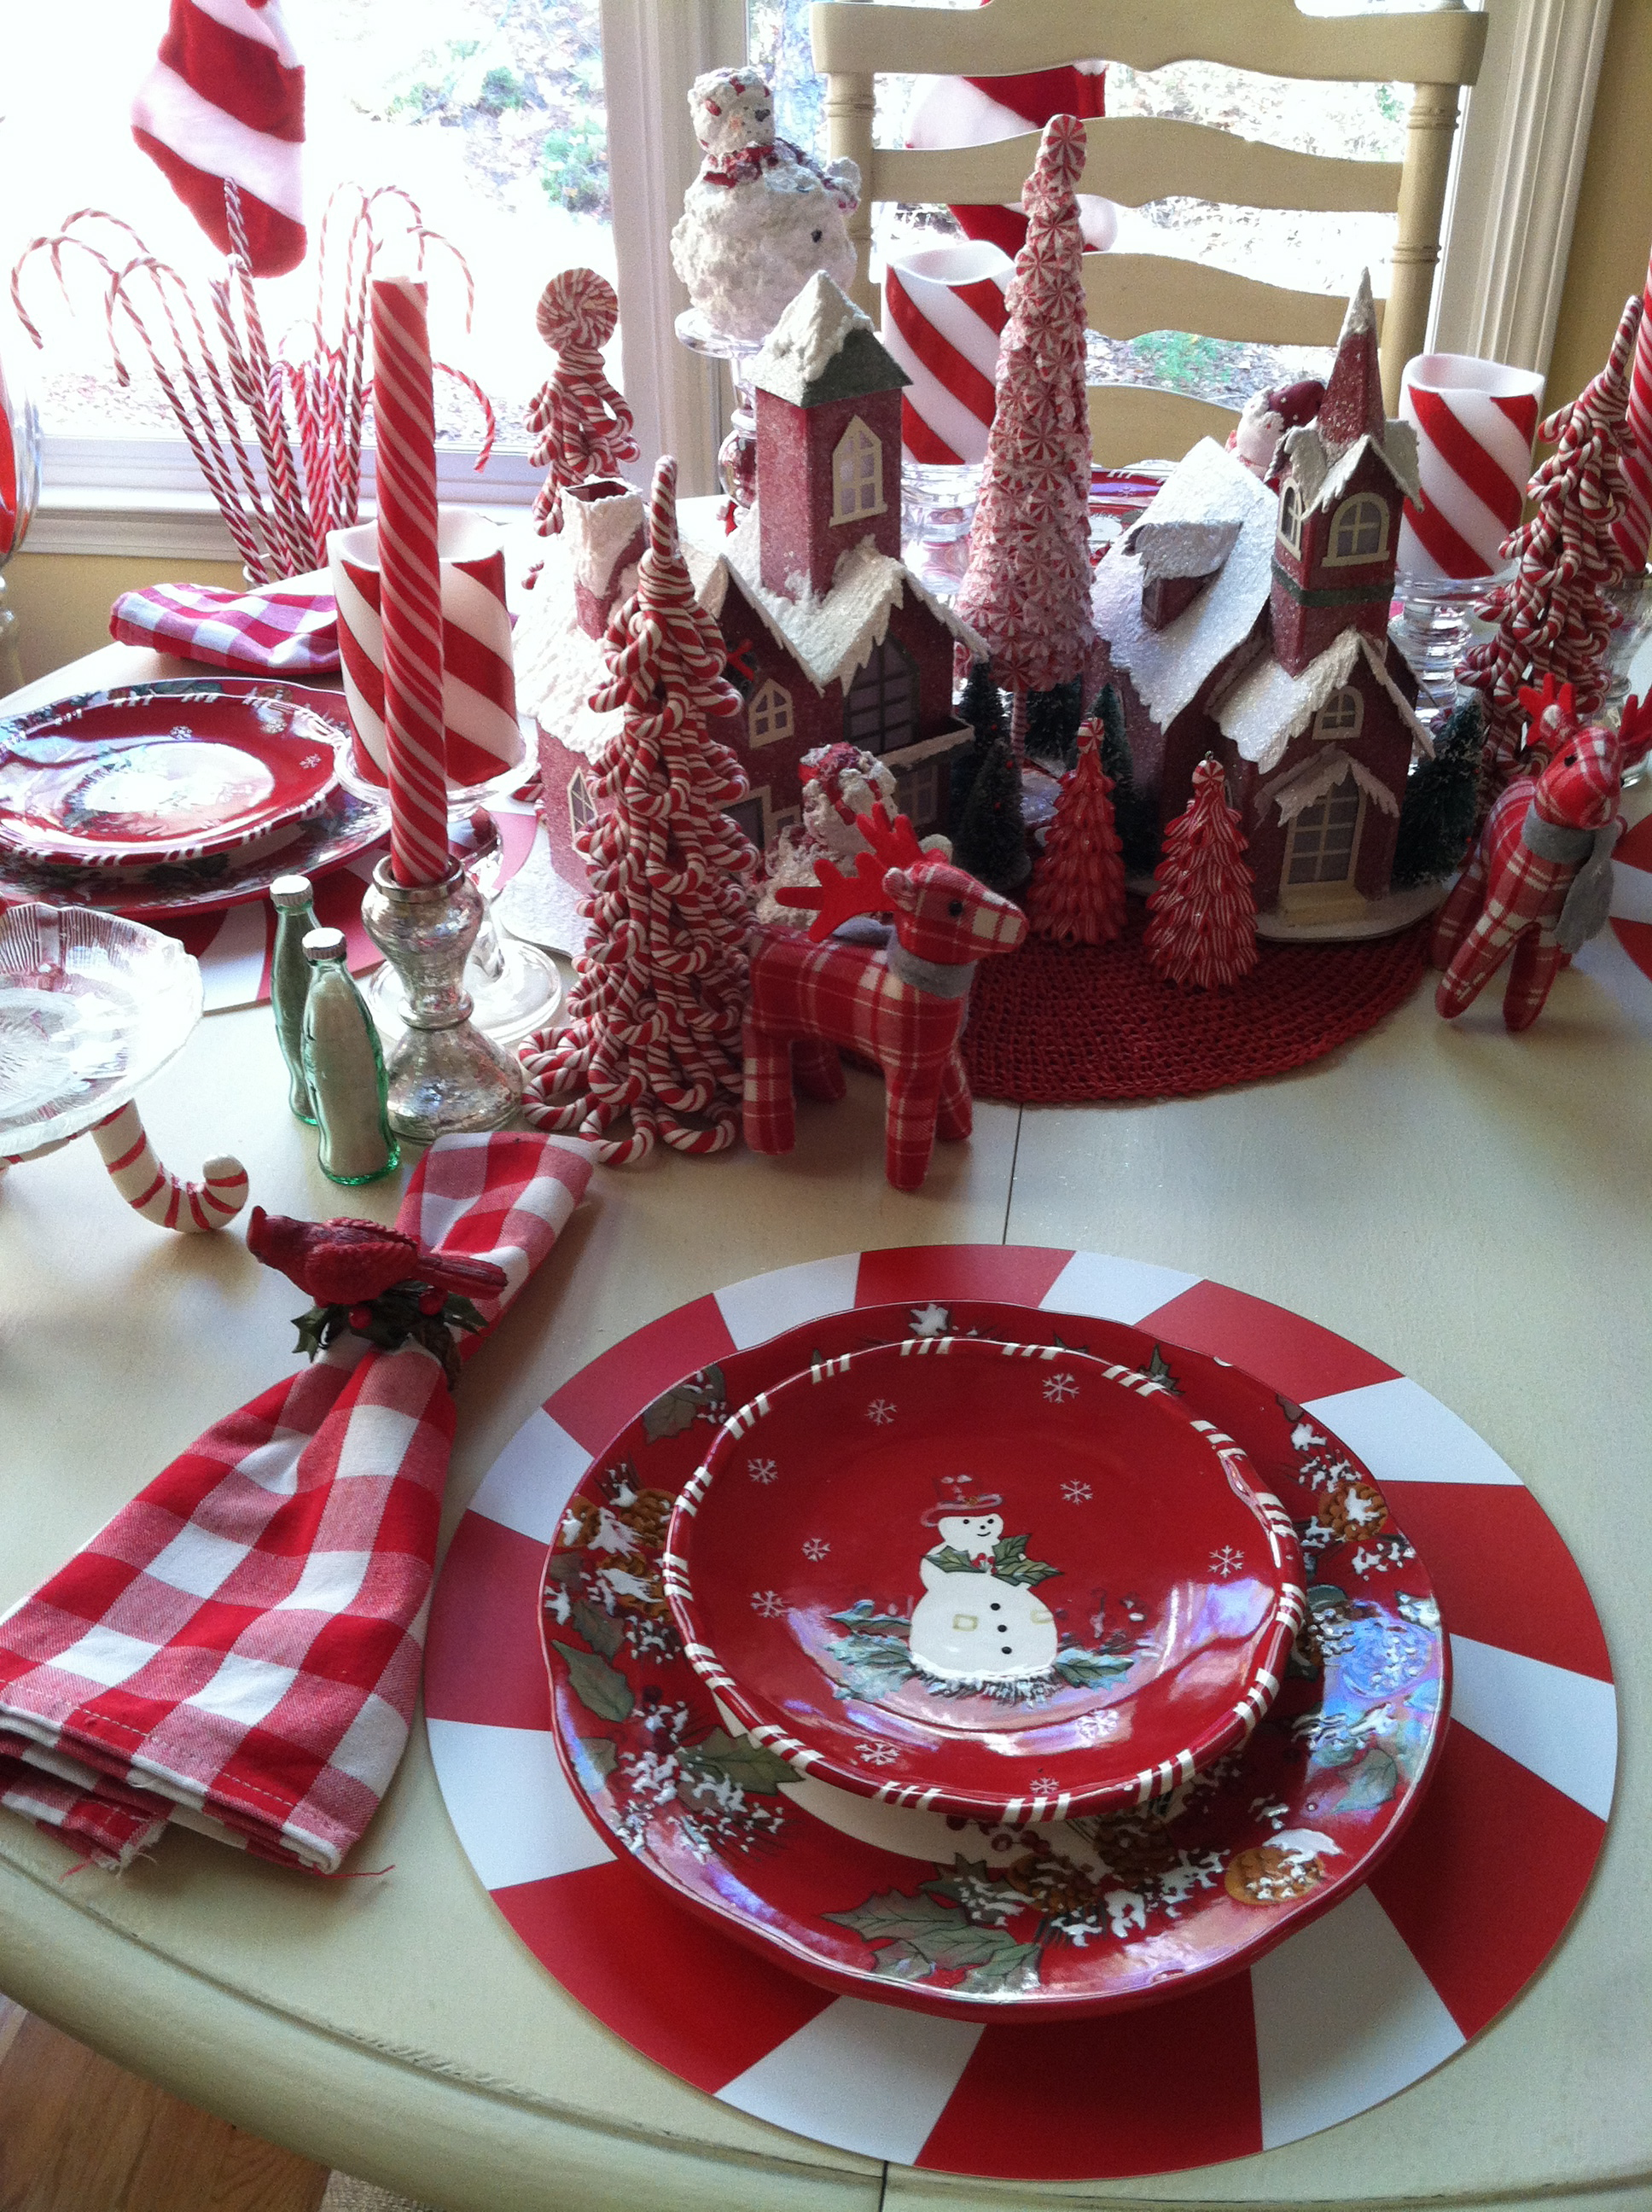 Red And White Christmas Table Setting Ideas Images & Pictures - Becuo